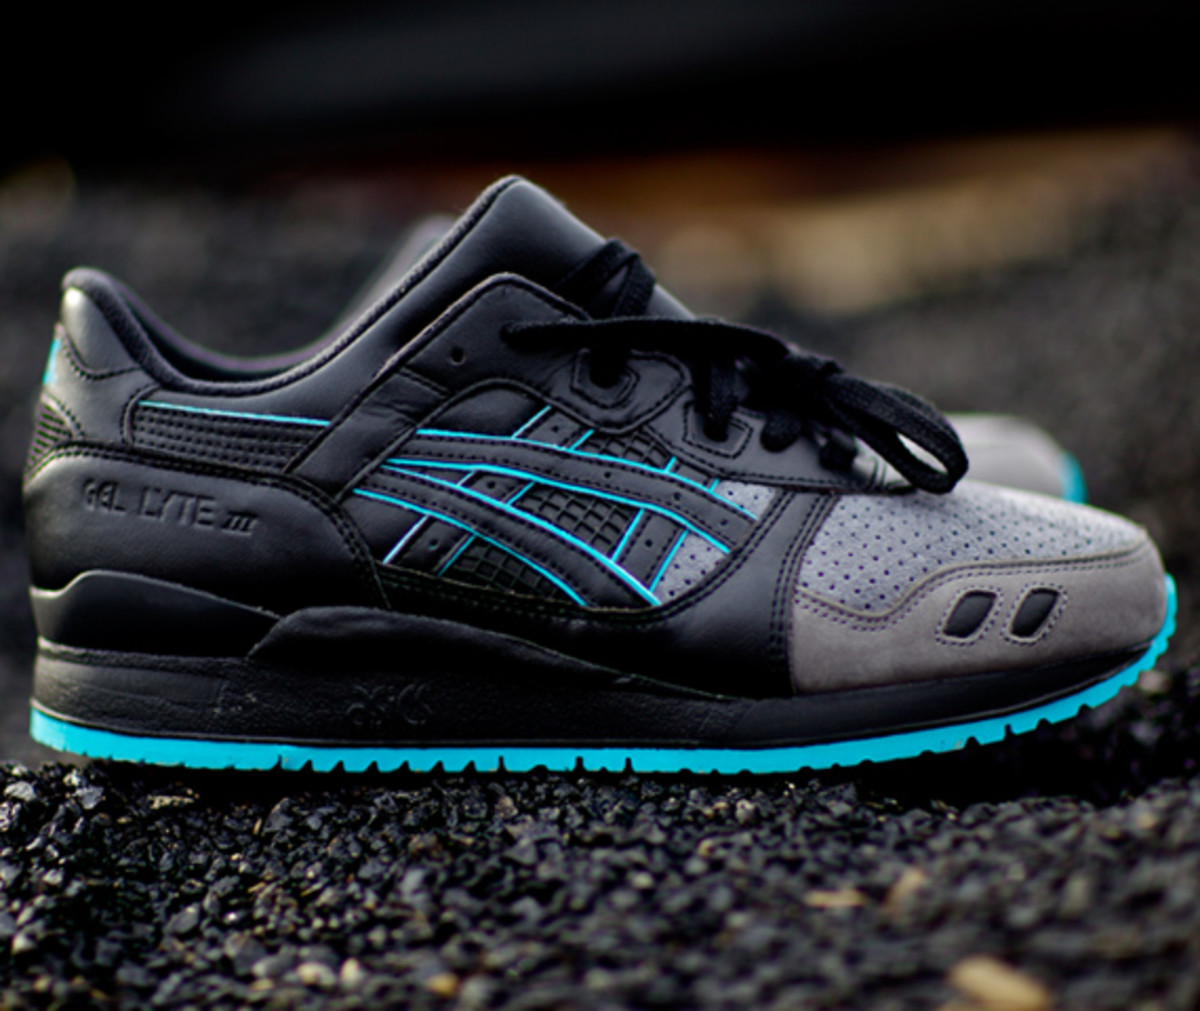 ronnie-fieg-asics-gel-lyte-iii-leather-back-kith-01